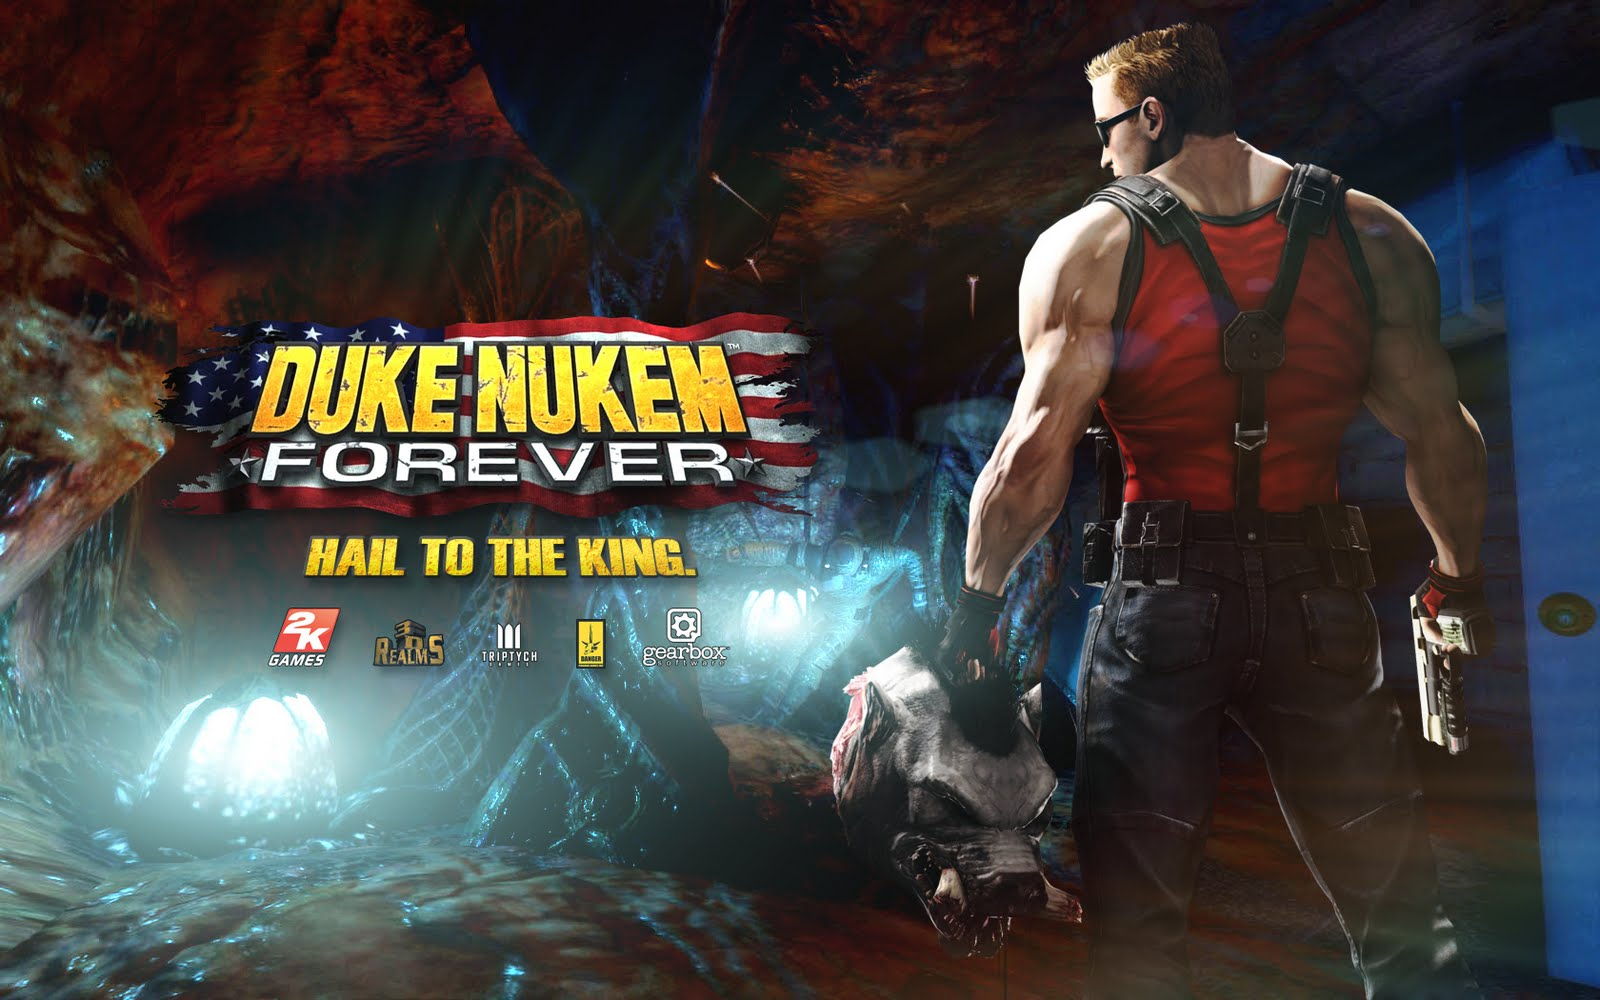 Duke Nukem Forever HD Wallpapers Download HD Video Game Wallpapers 1600x1000